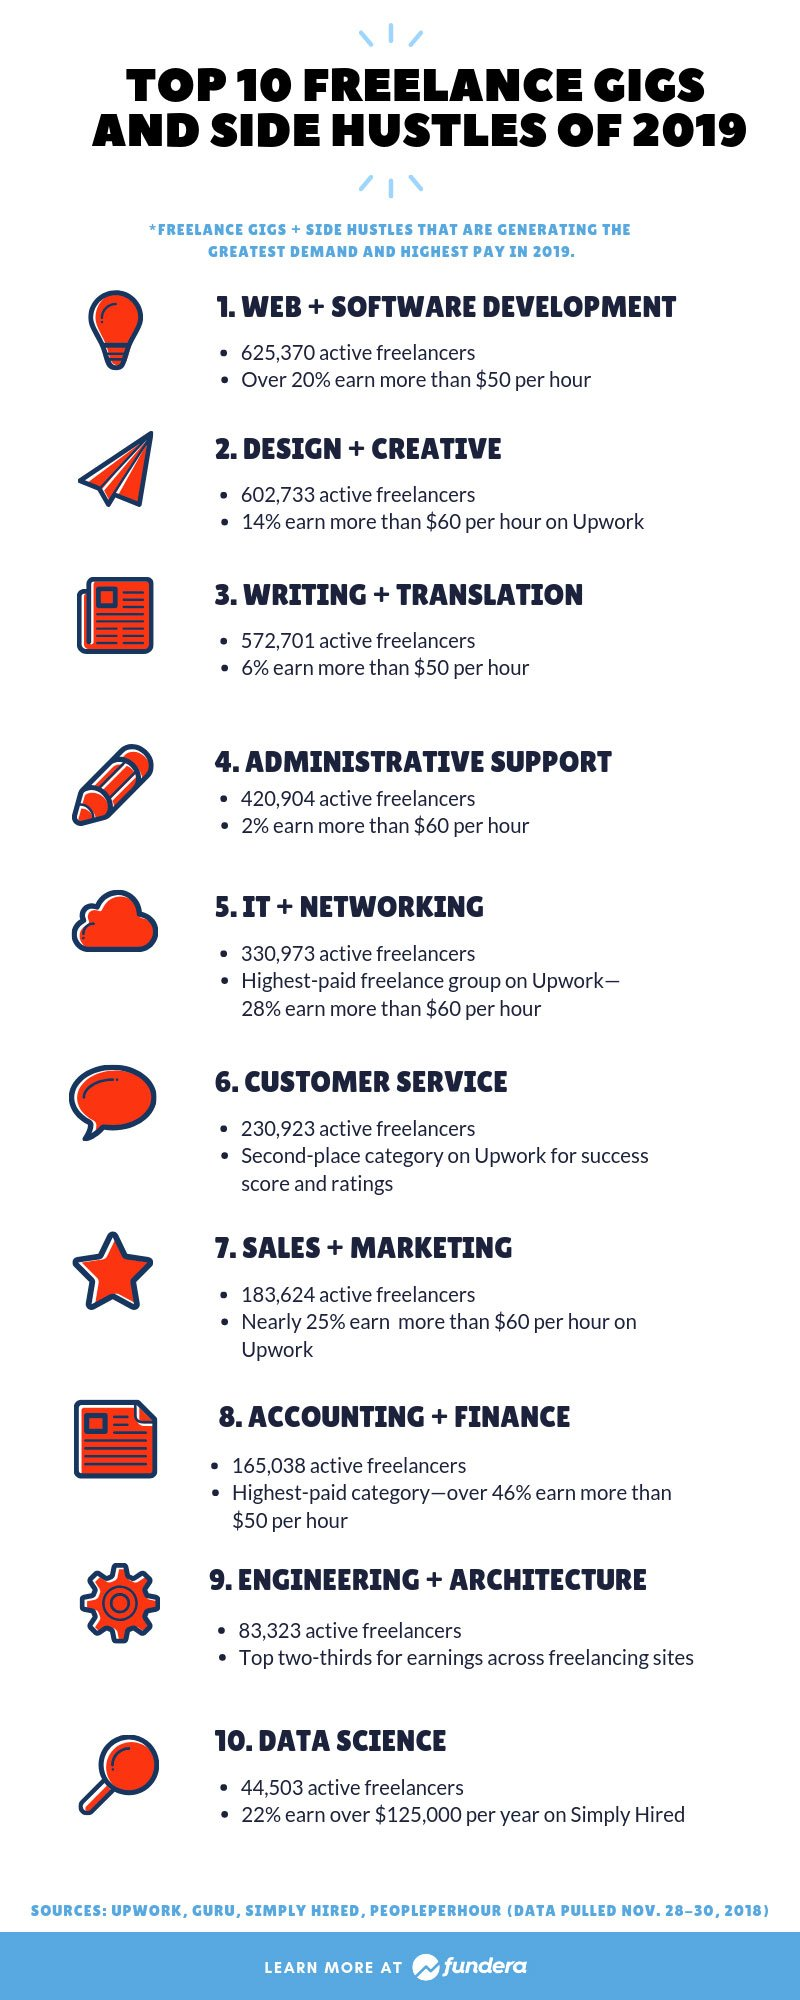 Infographic: The Top 10 Freelance Gigs and Side Hustles of 2019